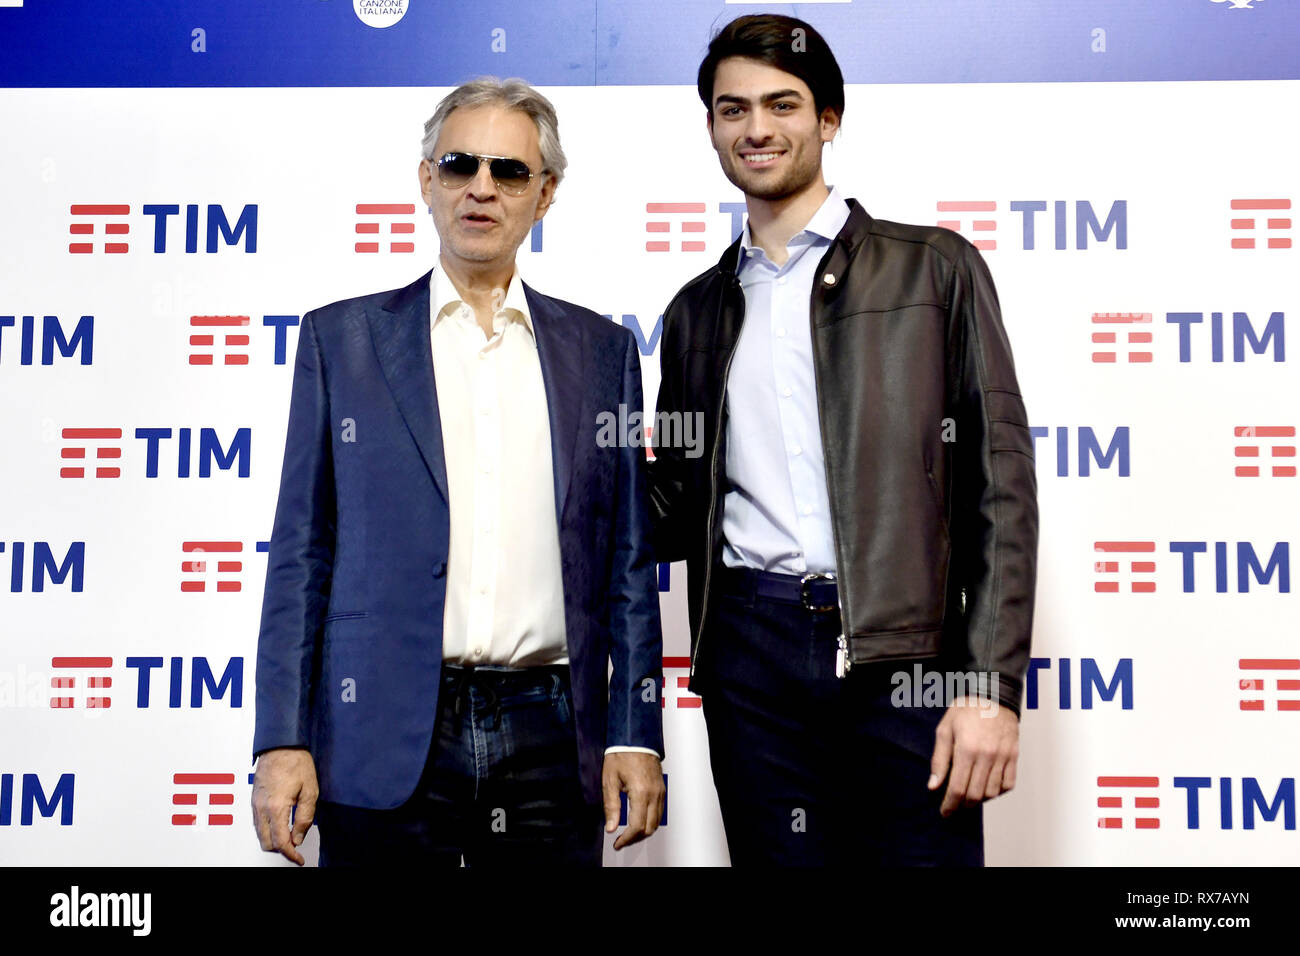 Sanremo Music Festival 2019 - Press Conference  Featuring: Andrea Bocelli, Matteo Bocelli Where: Sanremo, Liguria, Italy When: 05 Feb 2019 Credit: IPA/WENN.com  **Only available for publication in UK, USA, Germany, Austria, Switzerland** - Stock Image